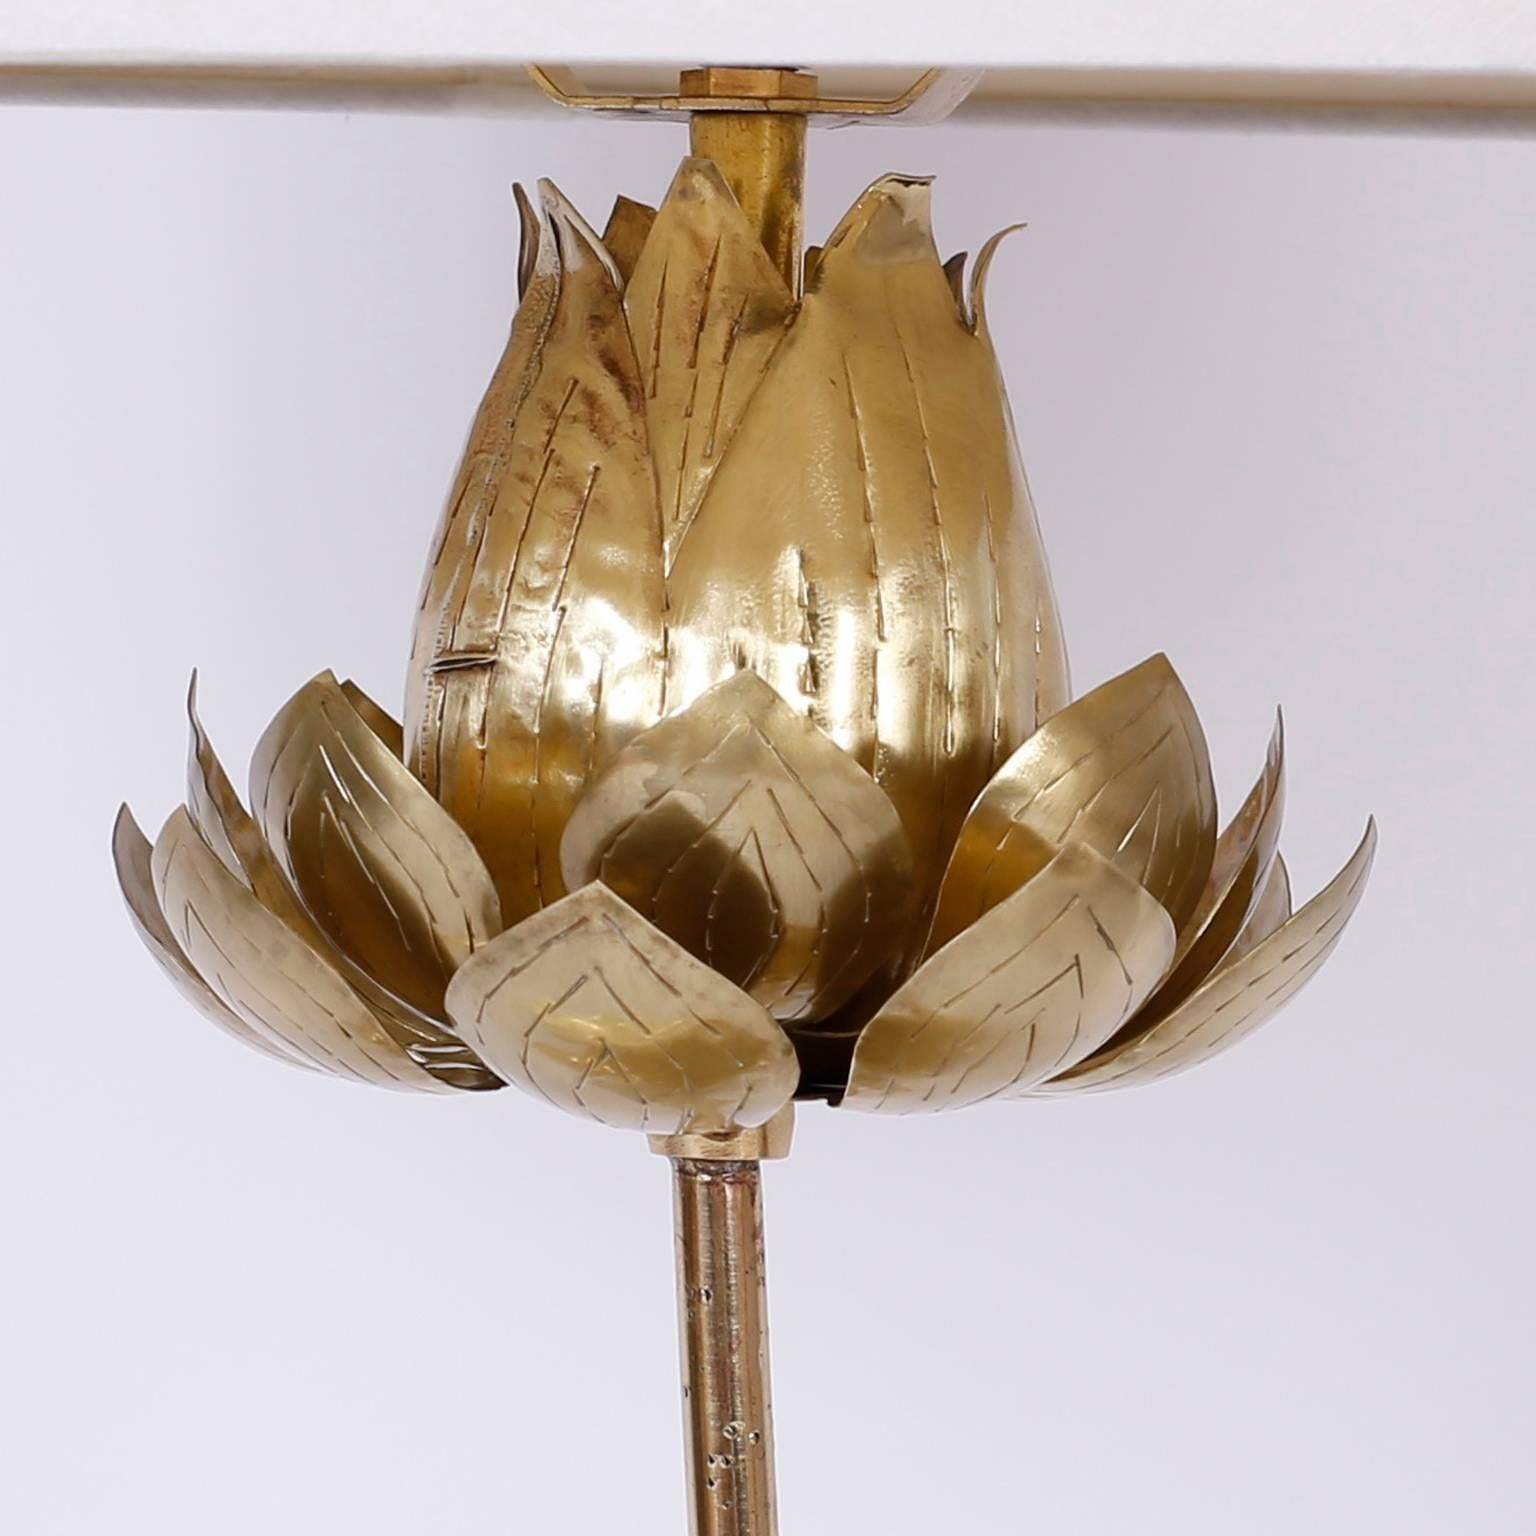 Tropical brass lotus flower table lamp for sale at 1stdibs izmirmasajfo Choice Image